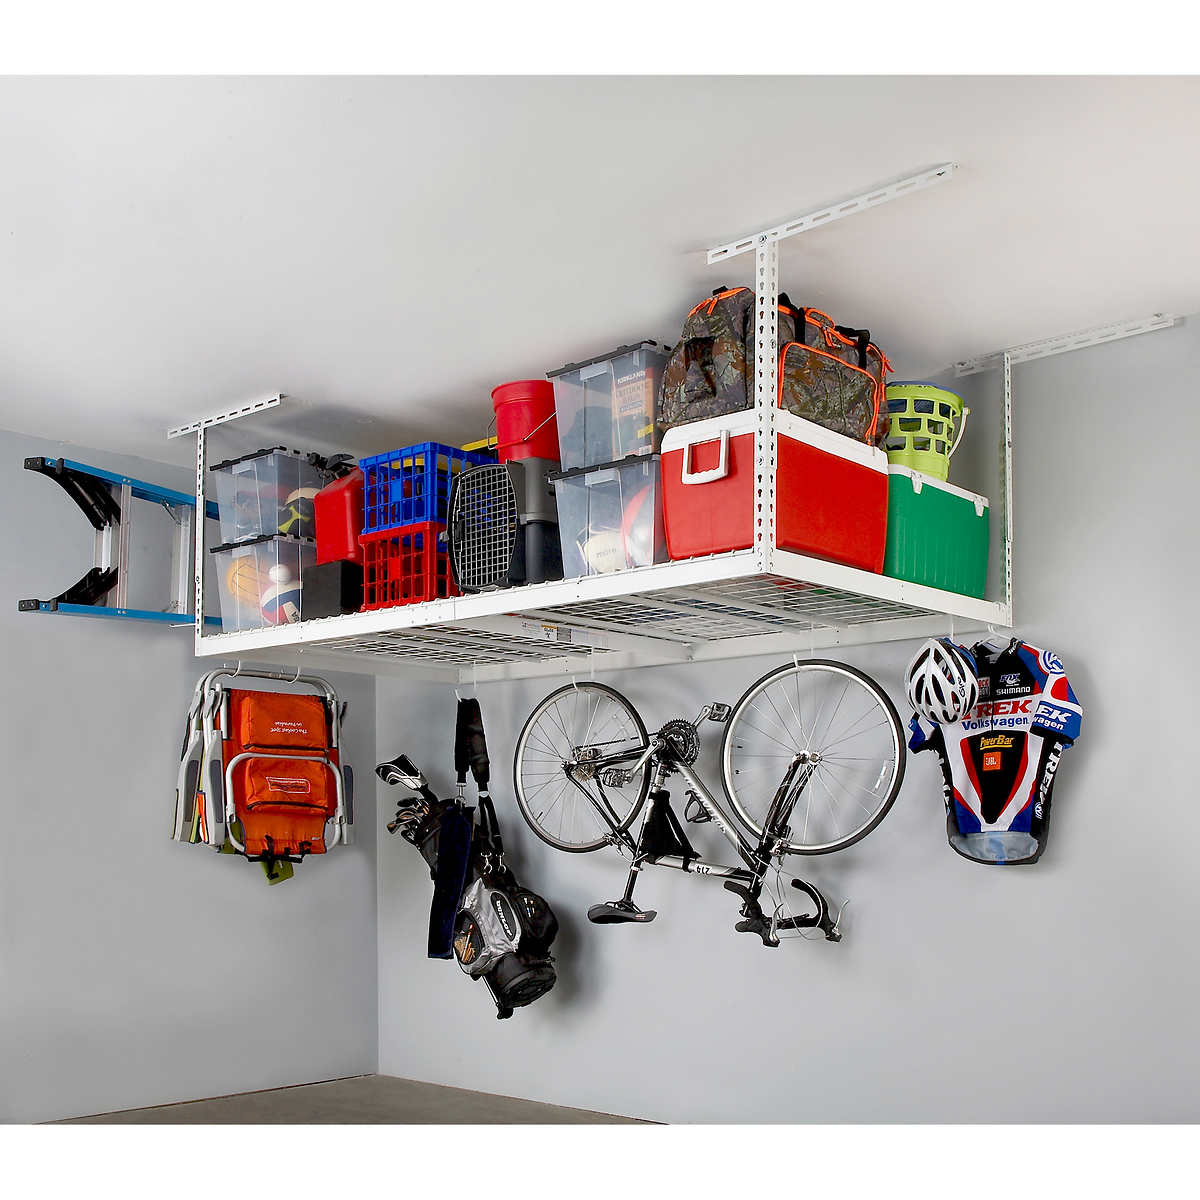 Saferacks 4 Ft X 8 Ft Overhead Garage Storage Rack And